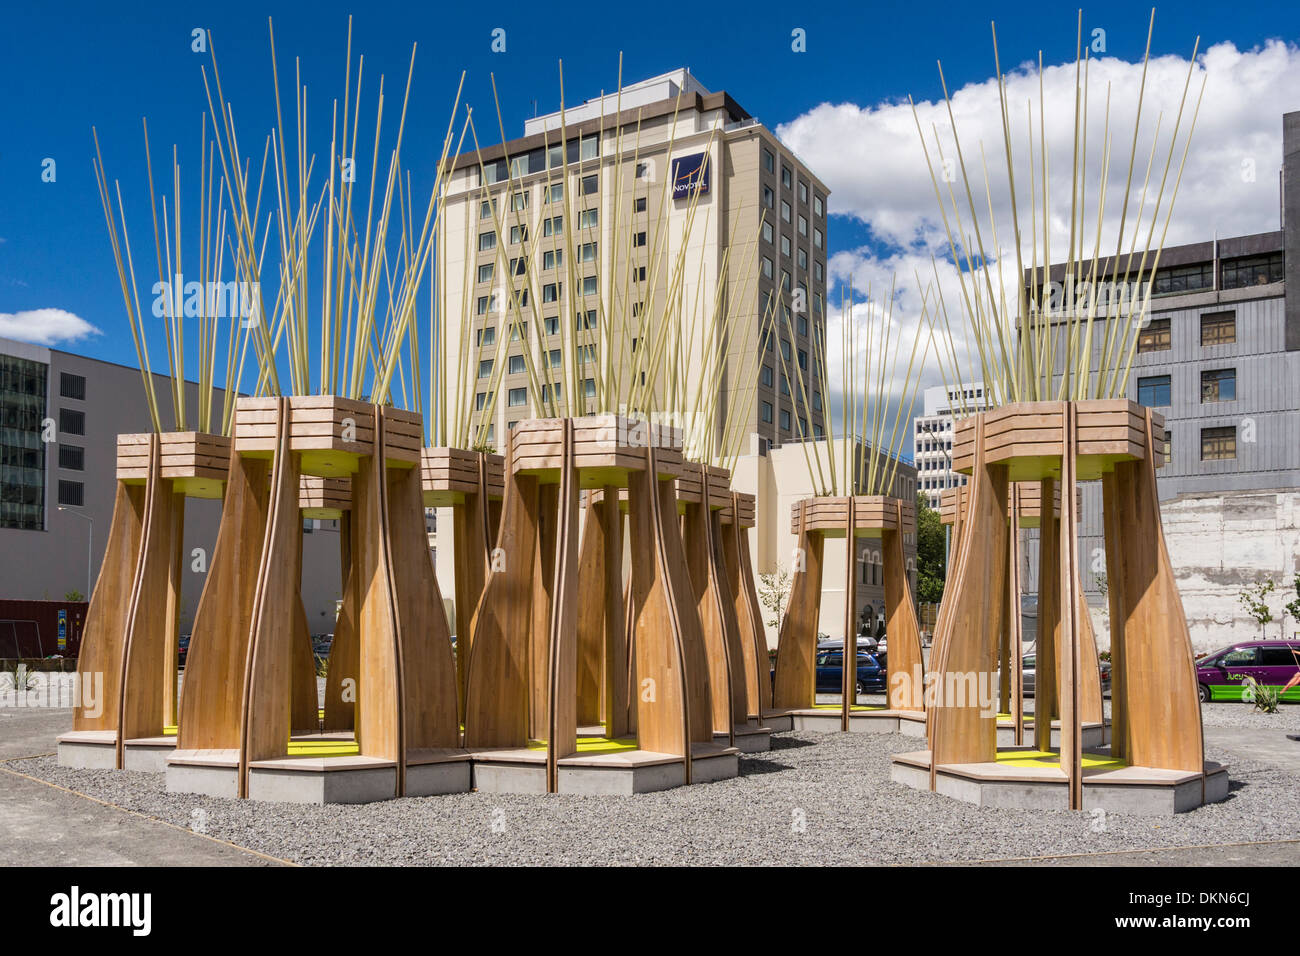 New installation in Christchurch New Zealand, Tree Houses for Swamp Dwellers, by Julia Morison. - Stock Image